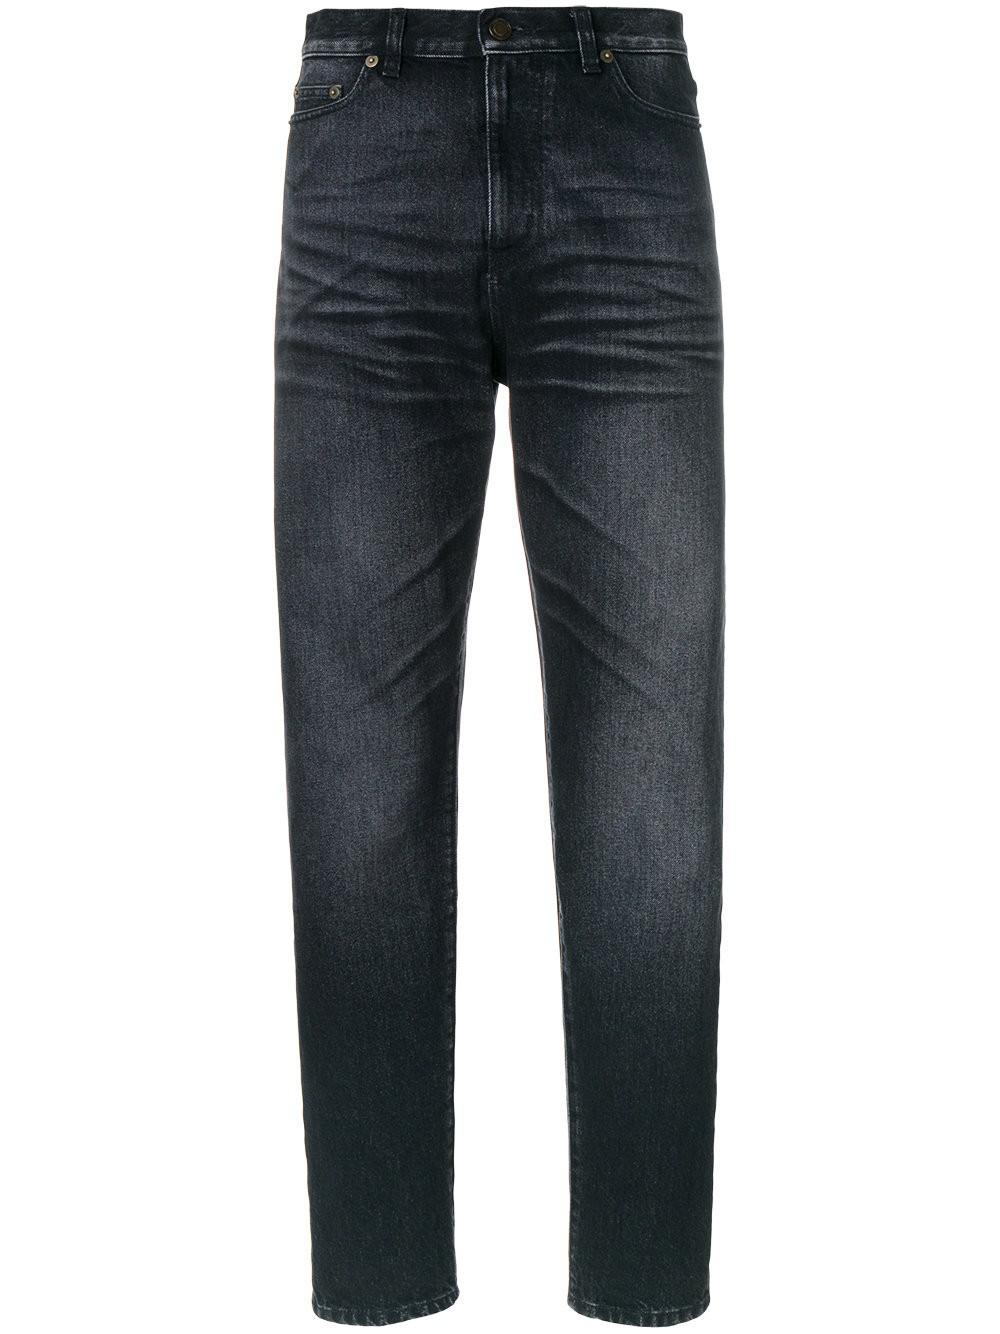 shadow pocket stonewashed baggy jeans - Black Saint Laurent Best Store To Get Buy Cheap Classic 3gUg7